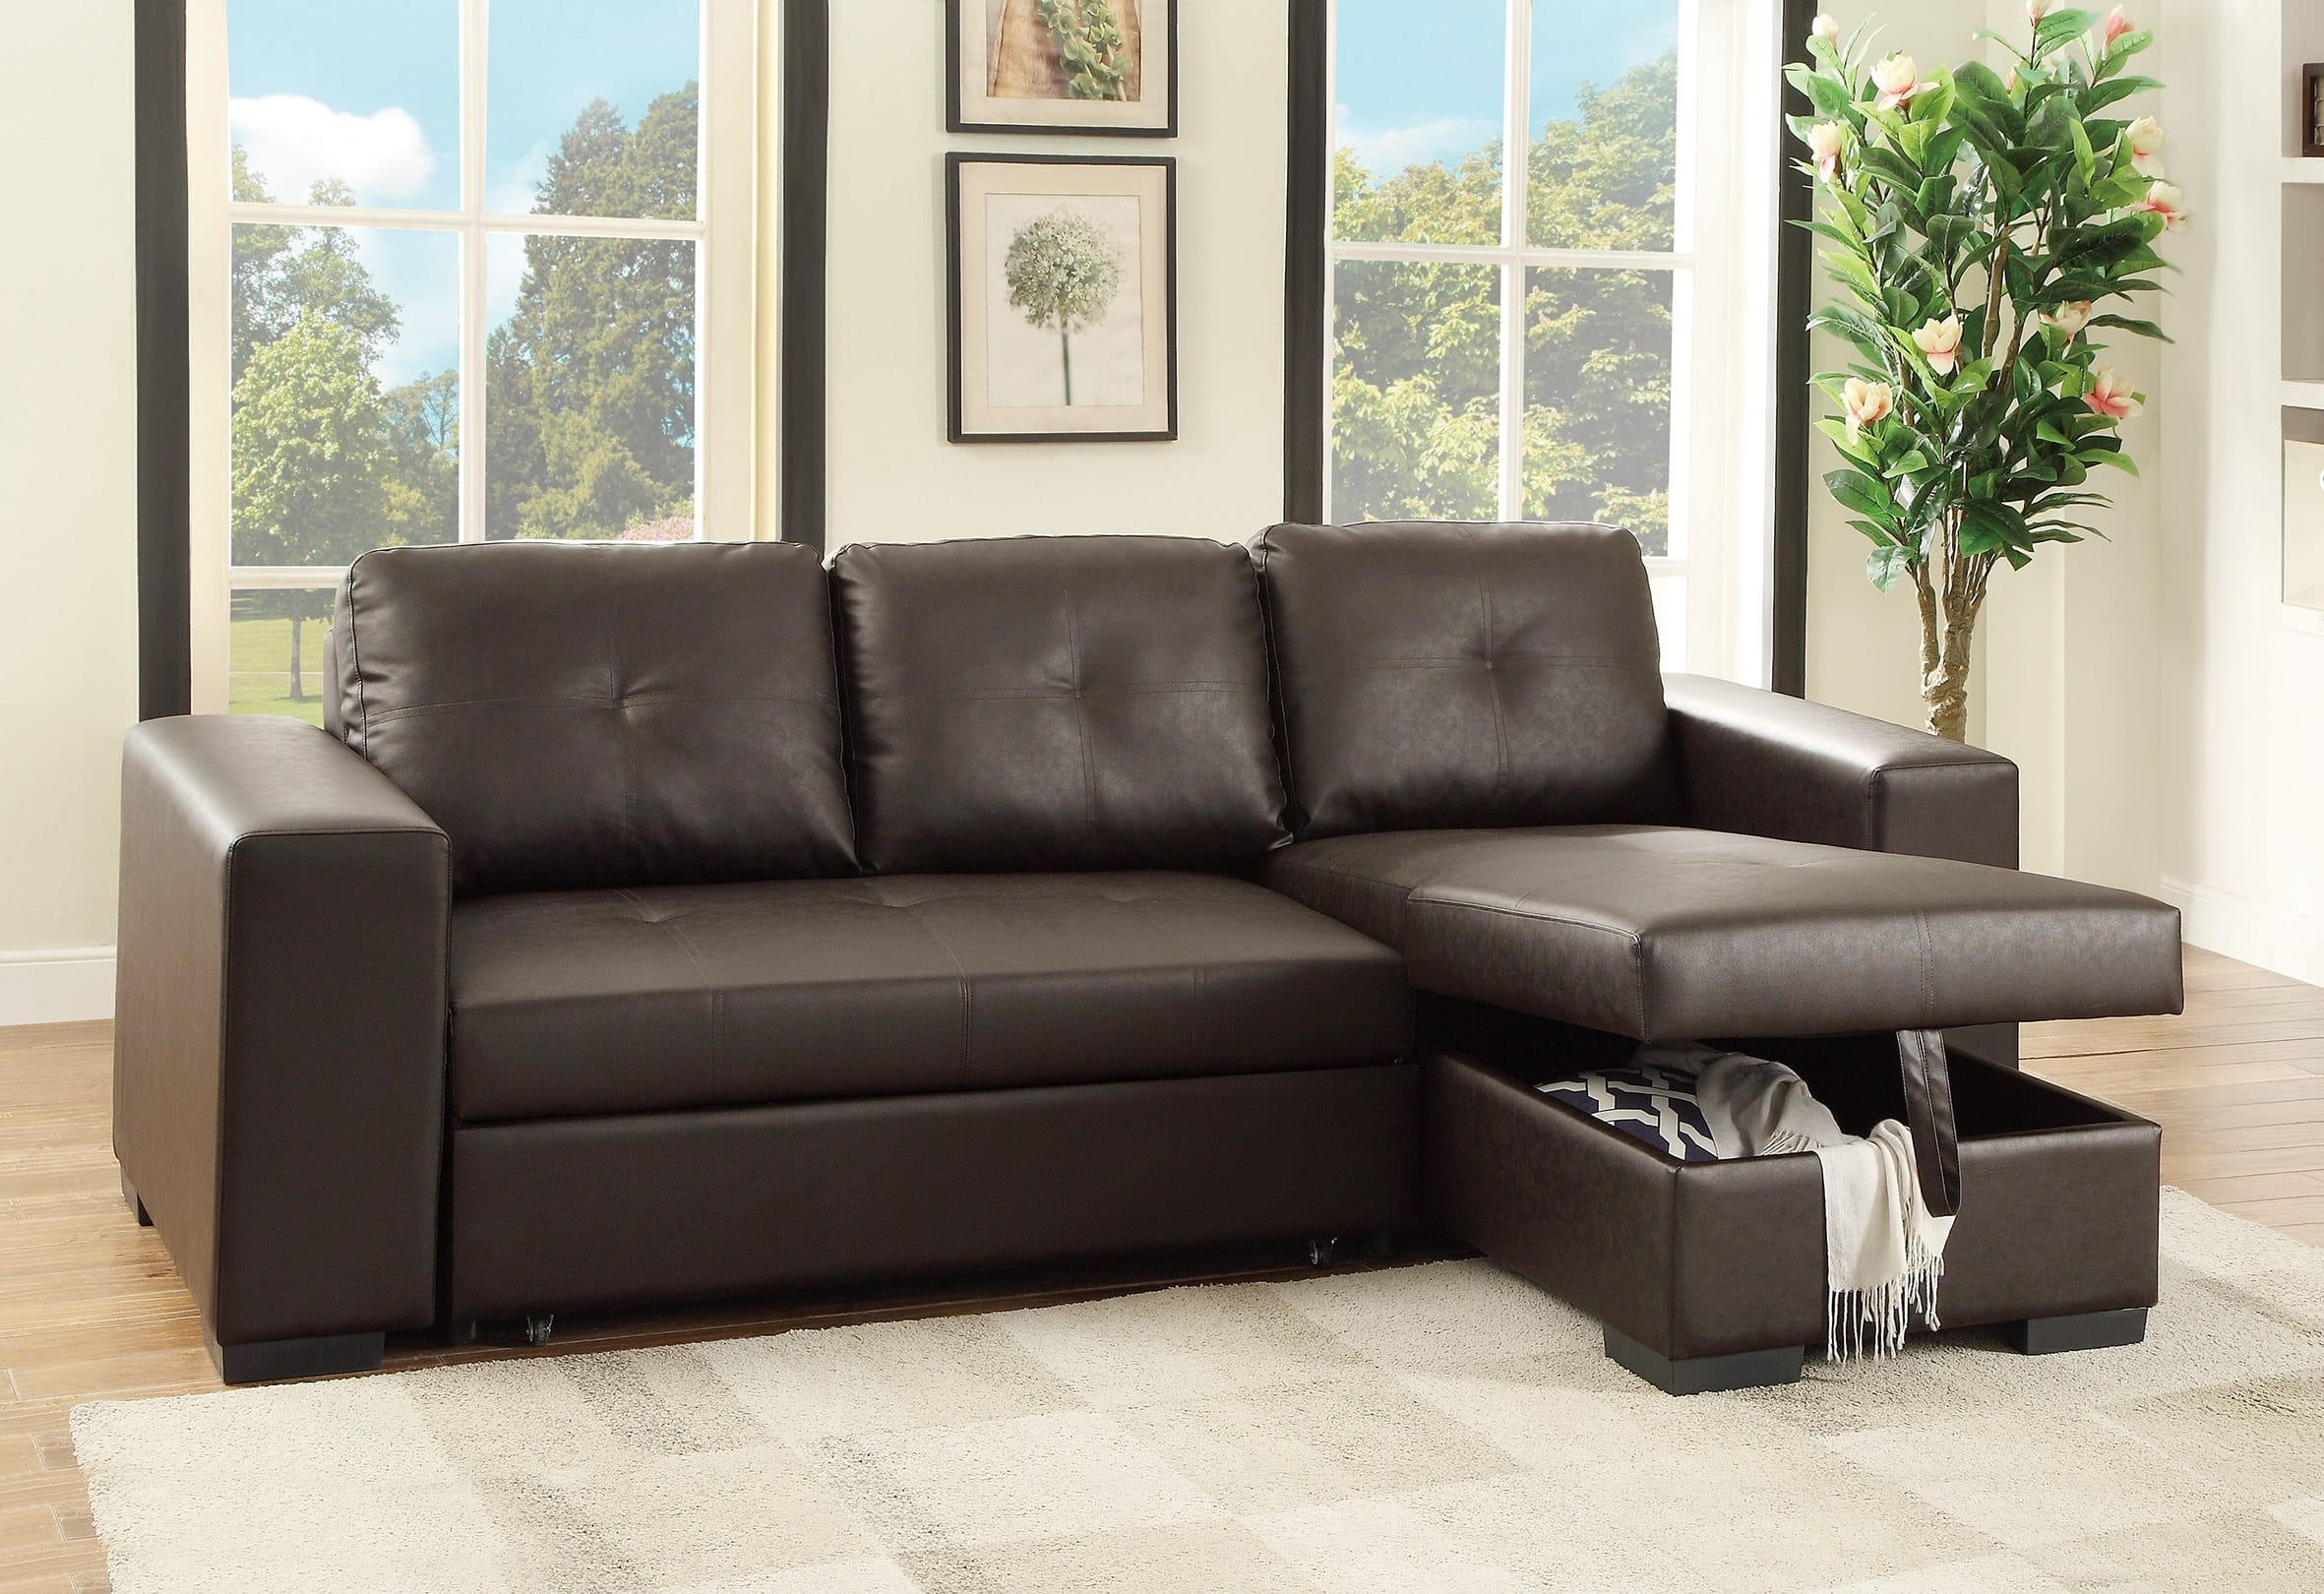 F6930 Espresso Convertible Sectional Sofa By Poundex (Poundex Associates  Corporation)